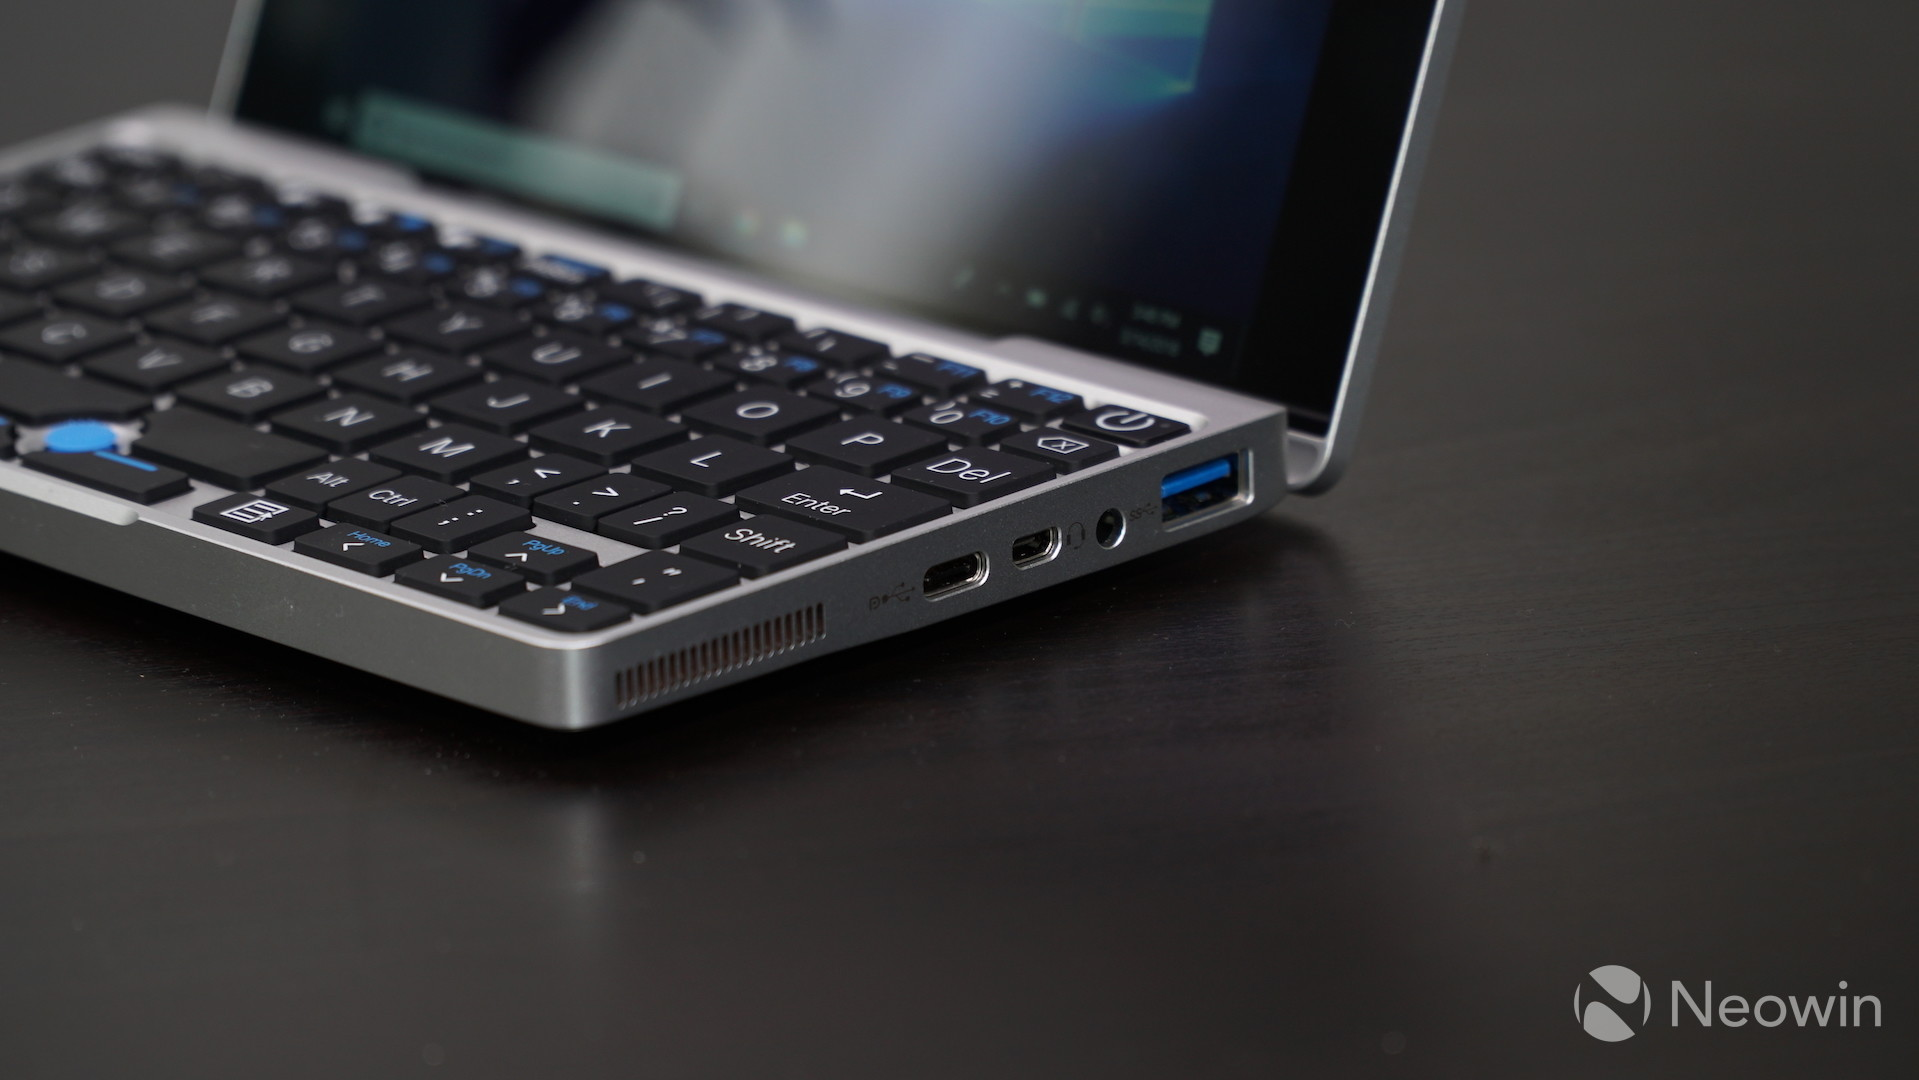 لپتاپ GPD Pocket